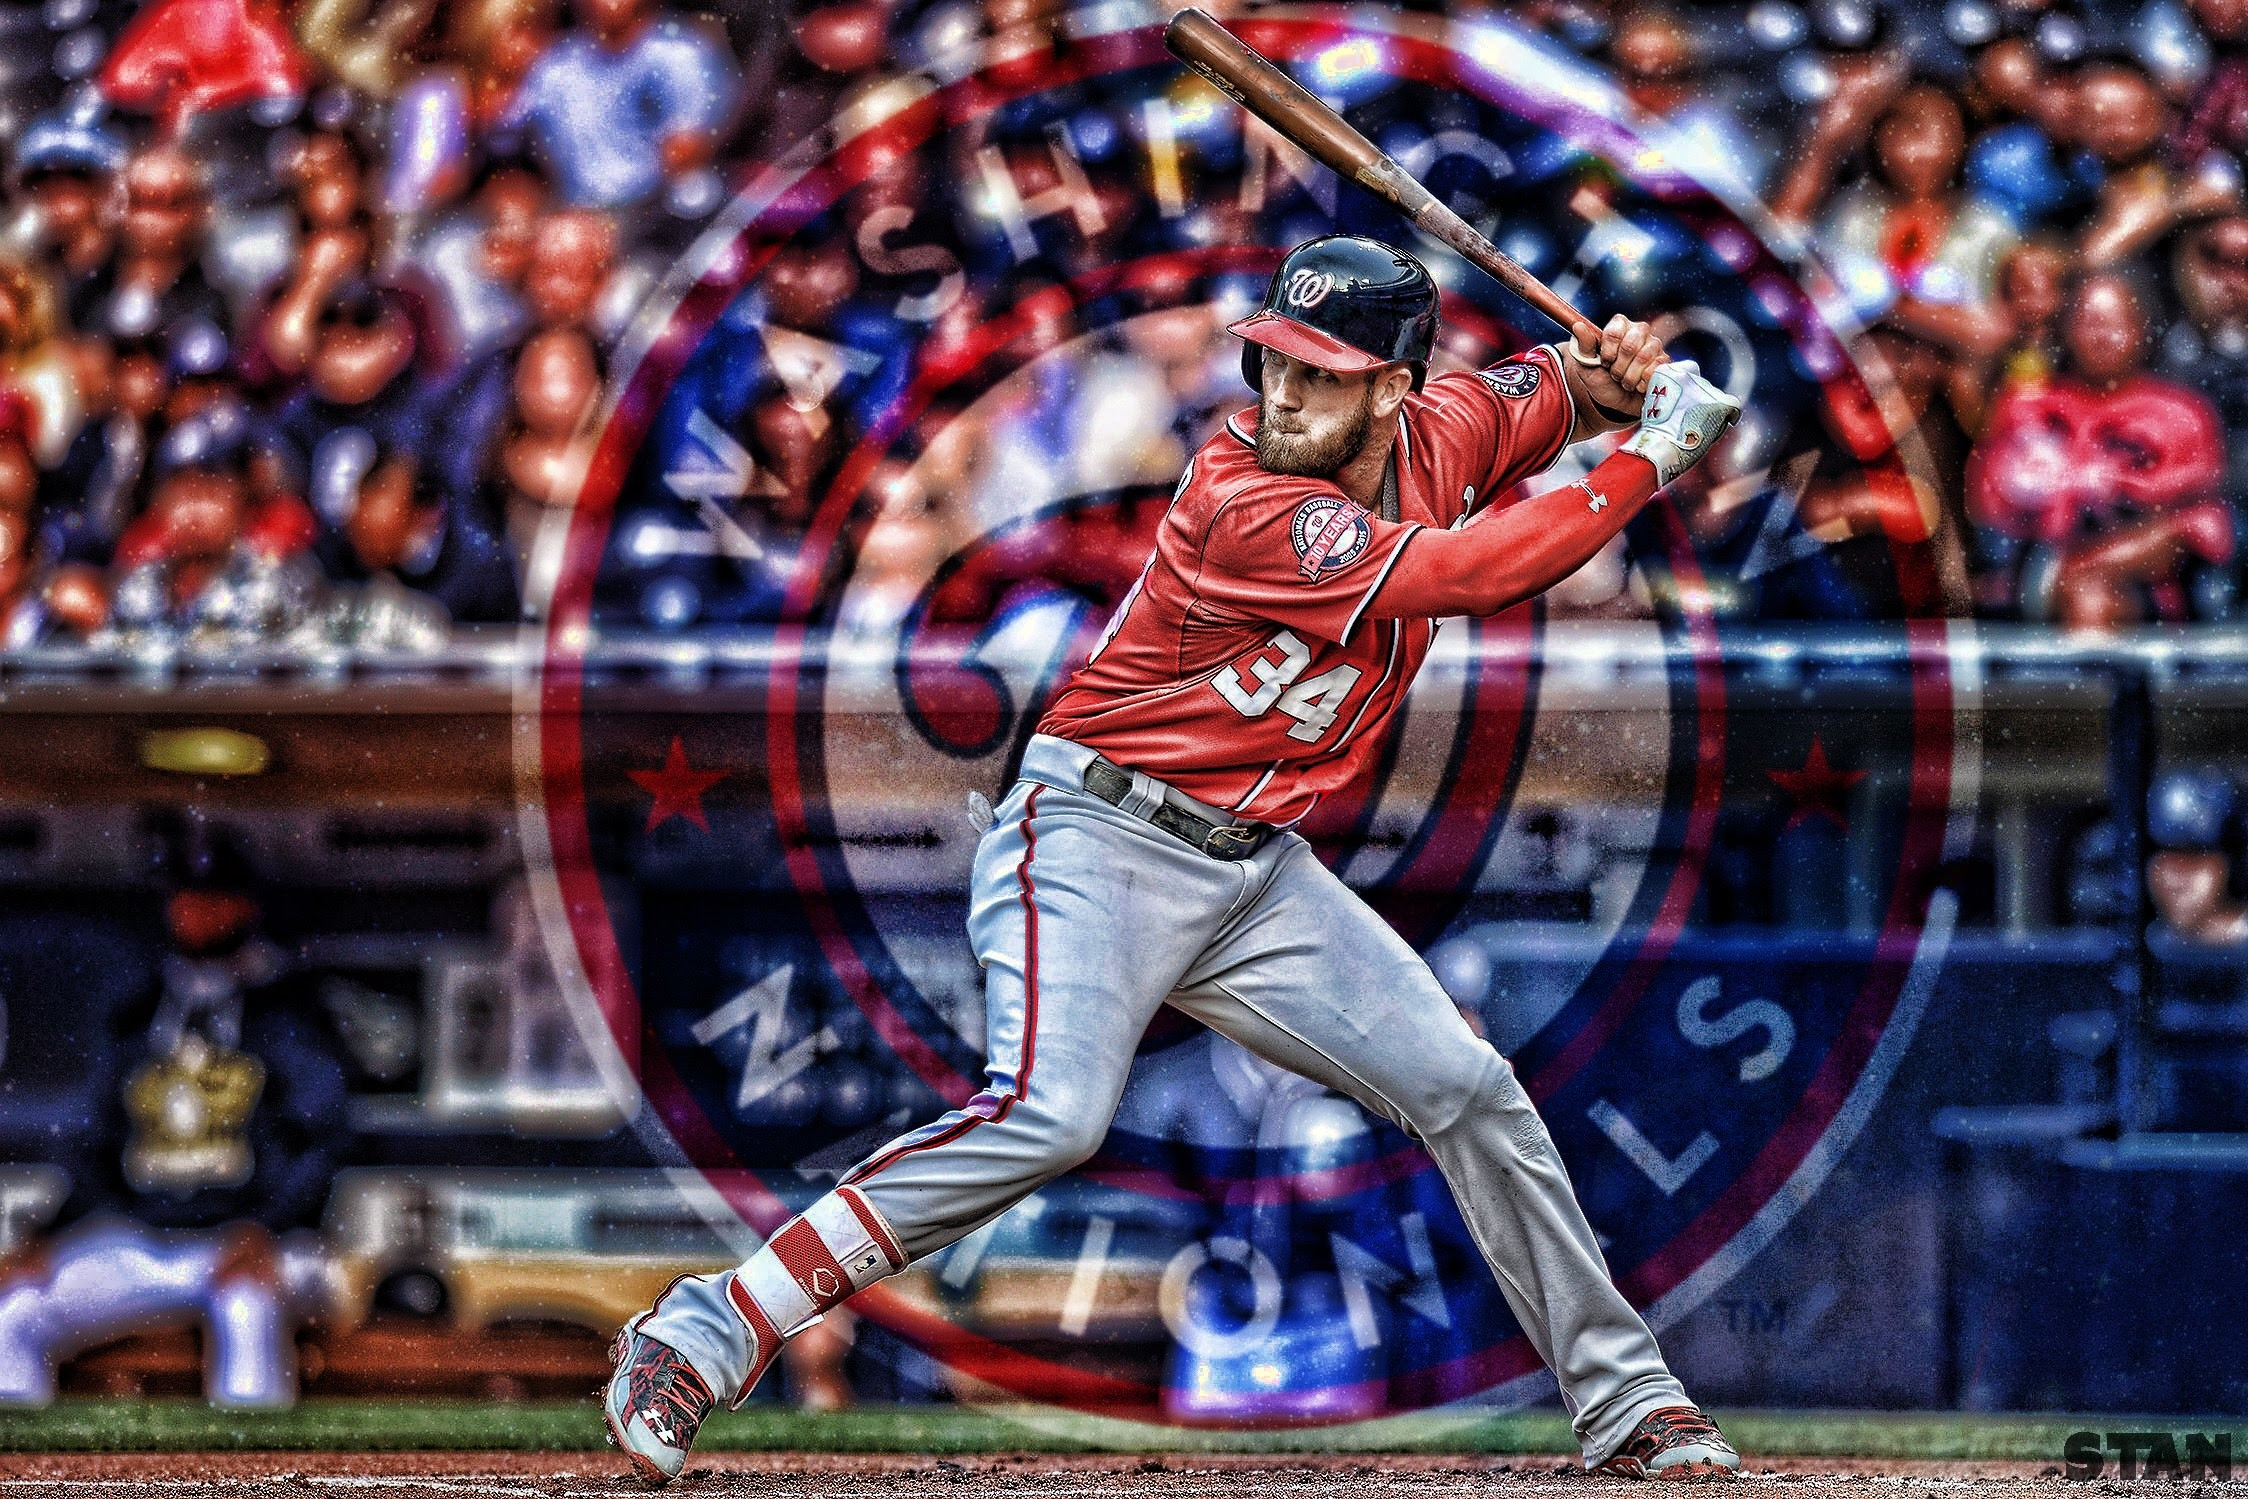 Bryce Harper Speed Edit (Photoshop/Topaz Labs)